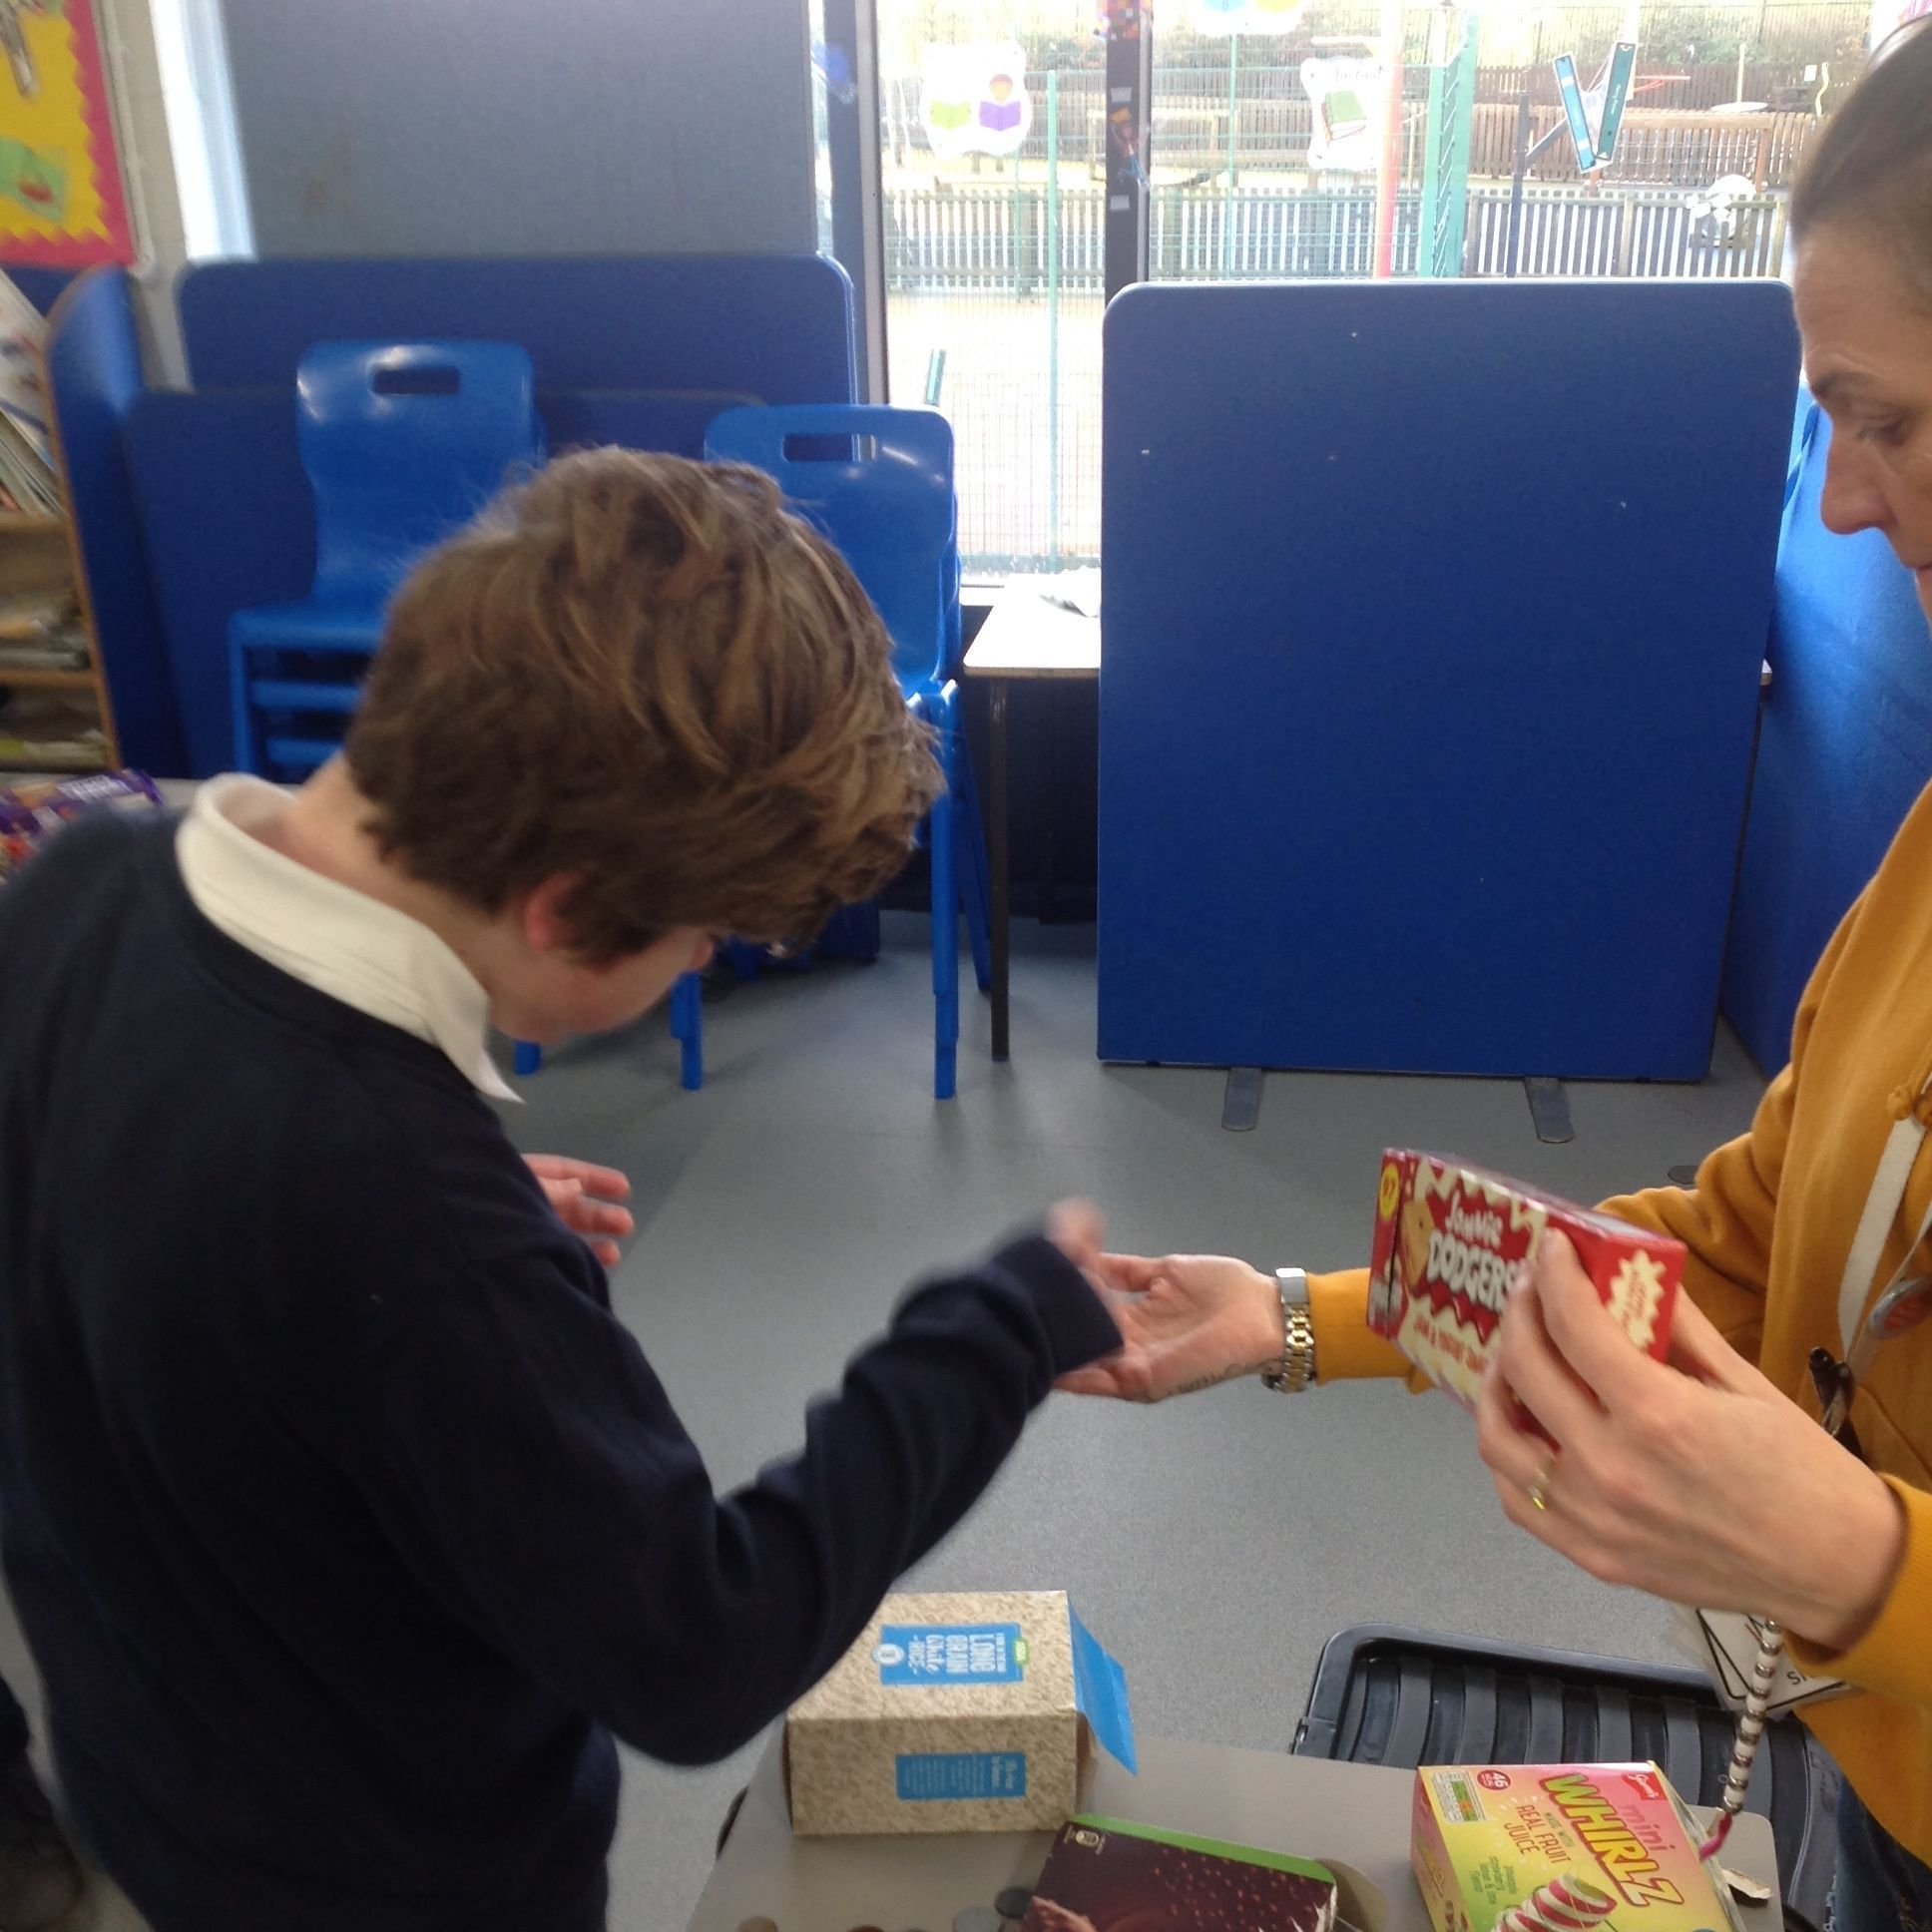 Young boy and teacher sharing items in a learning environment